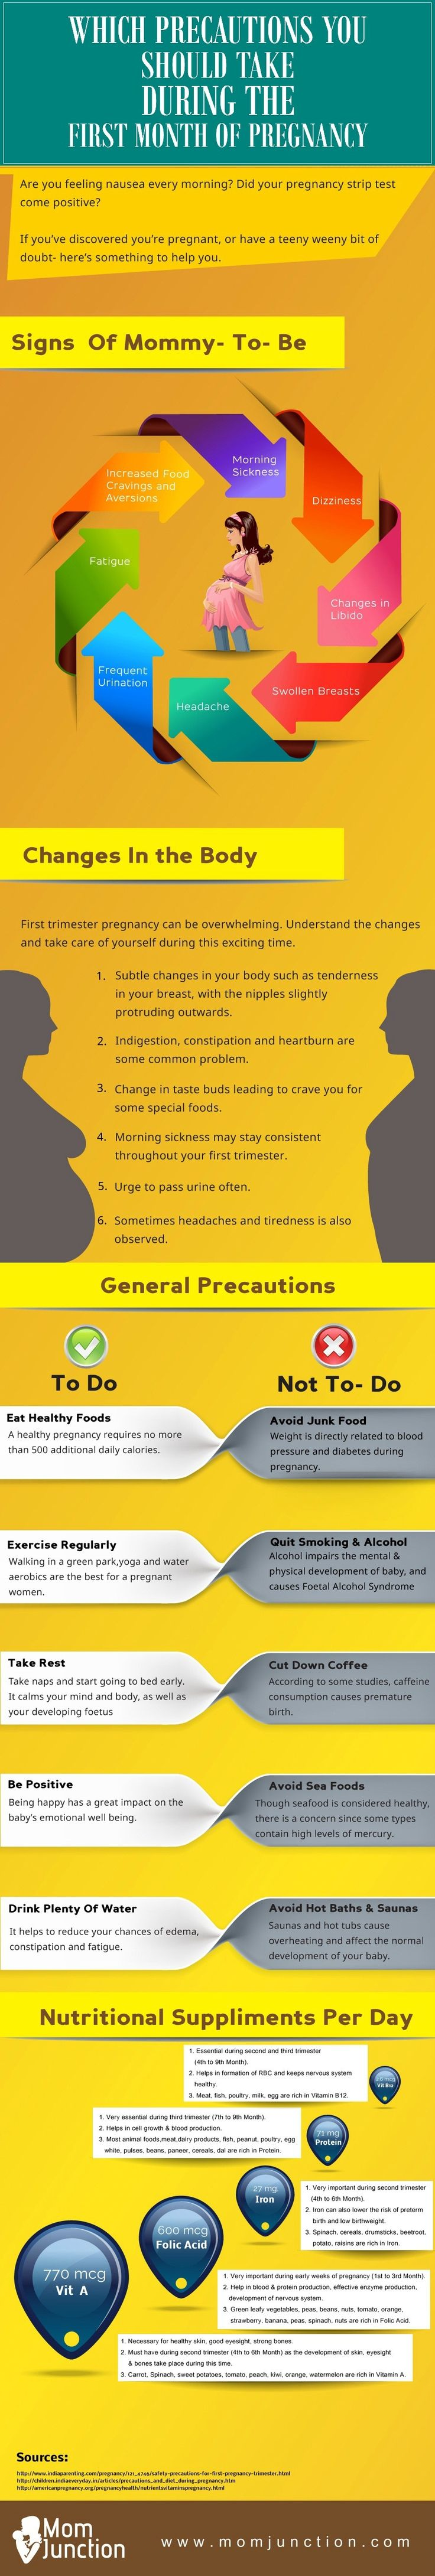 pregnancy precautions: Which Precautions Should You Take During The First Month Of Pregnancy?